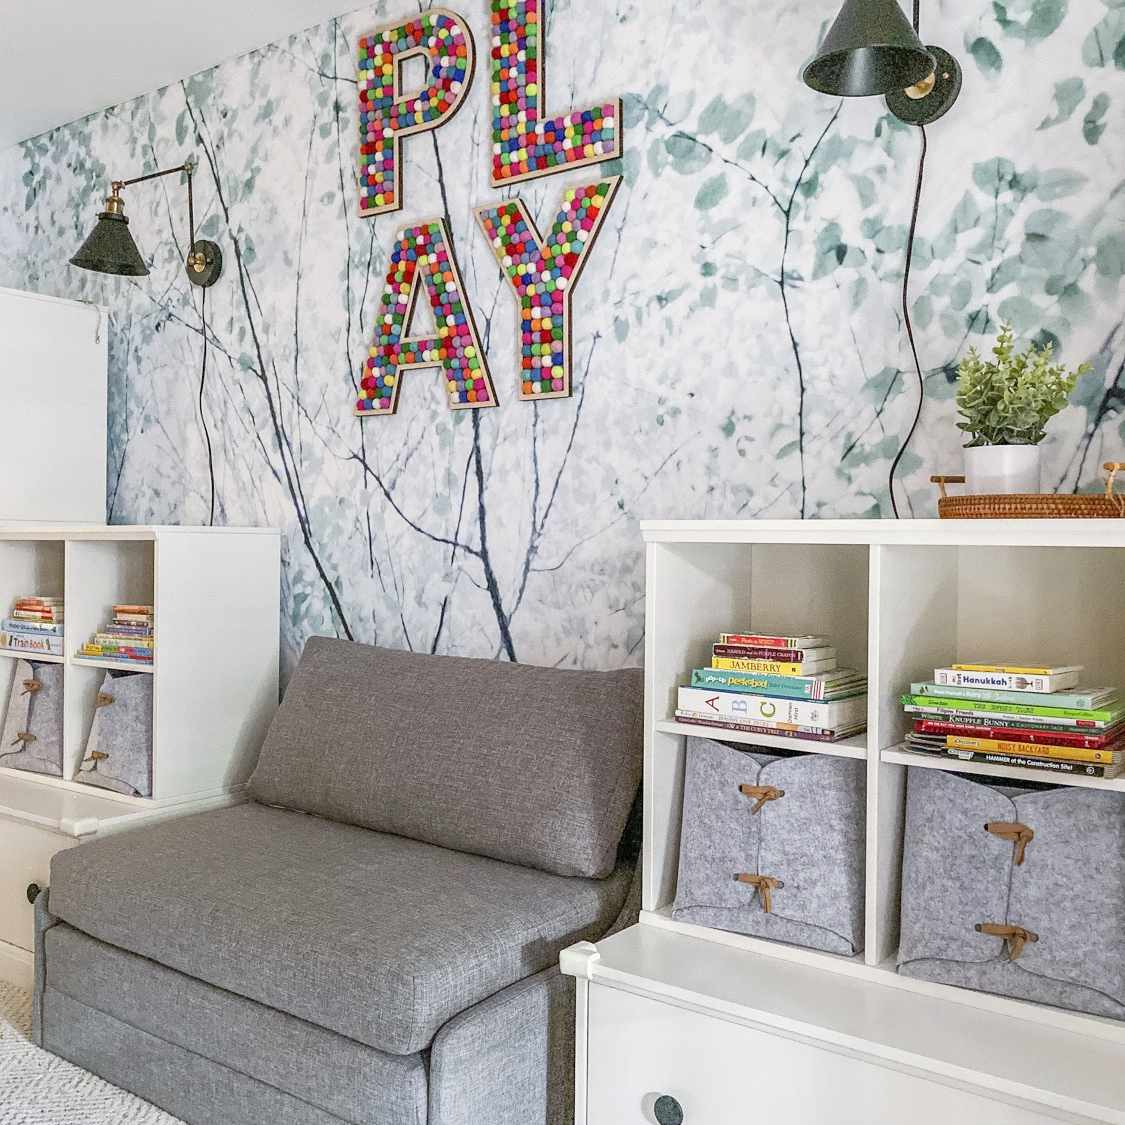 tree branches and leaves speckled throughout bring the outdoors inside in this playroom